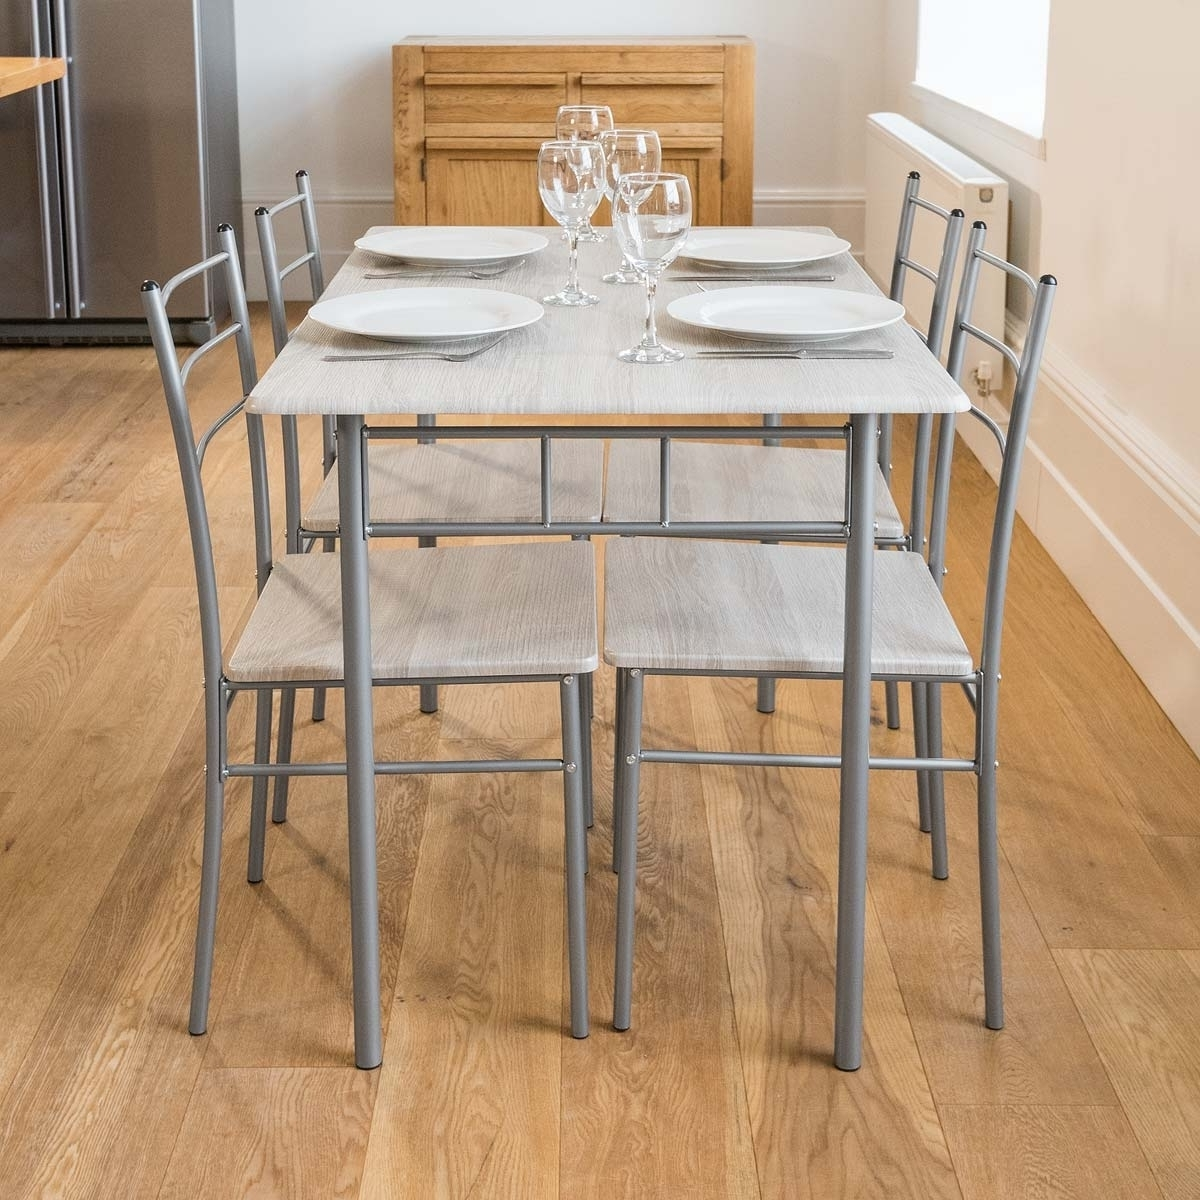 5 Piece Modern Dining Table And 4 Chairs Set Textured Wood Effect Pertaining To 2017 Modern Dining Table And Chairs (View 2 of 25)